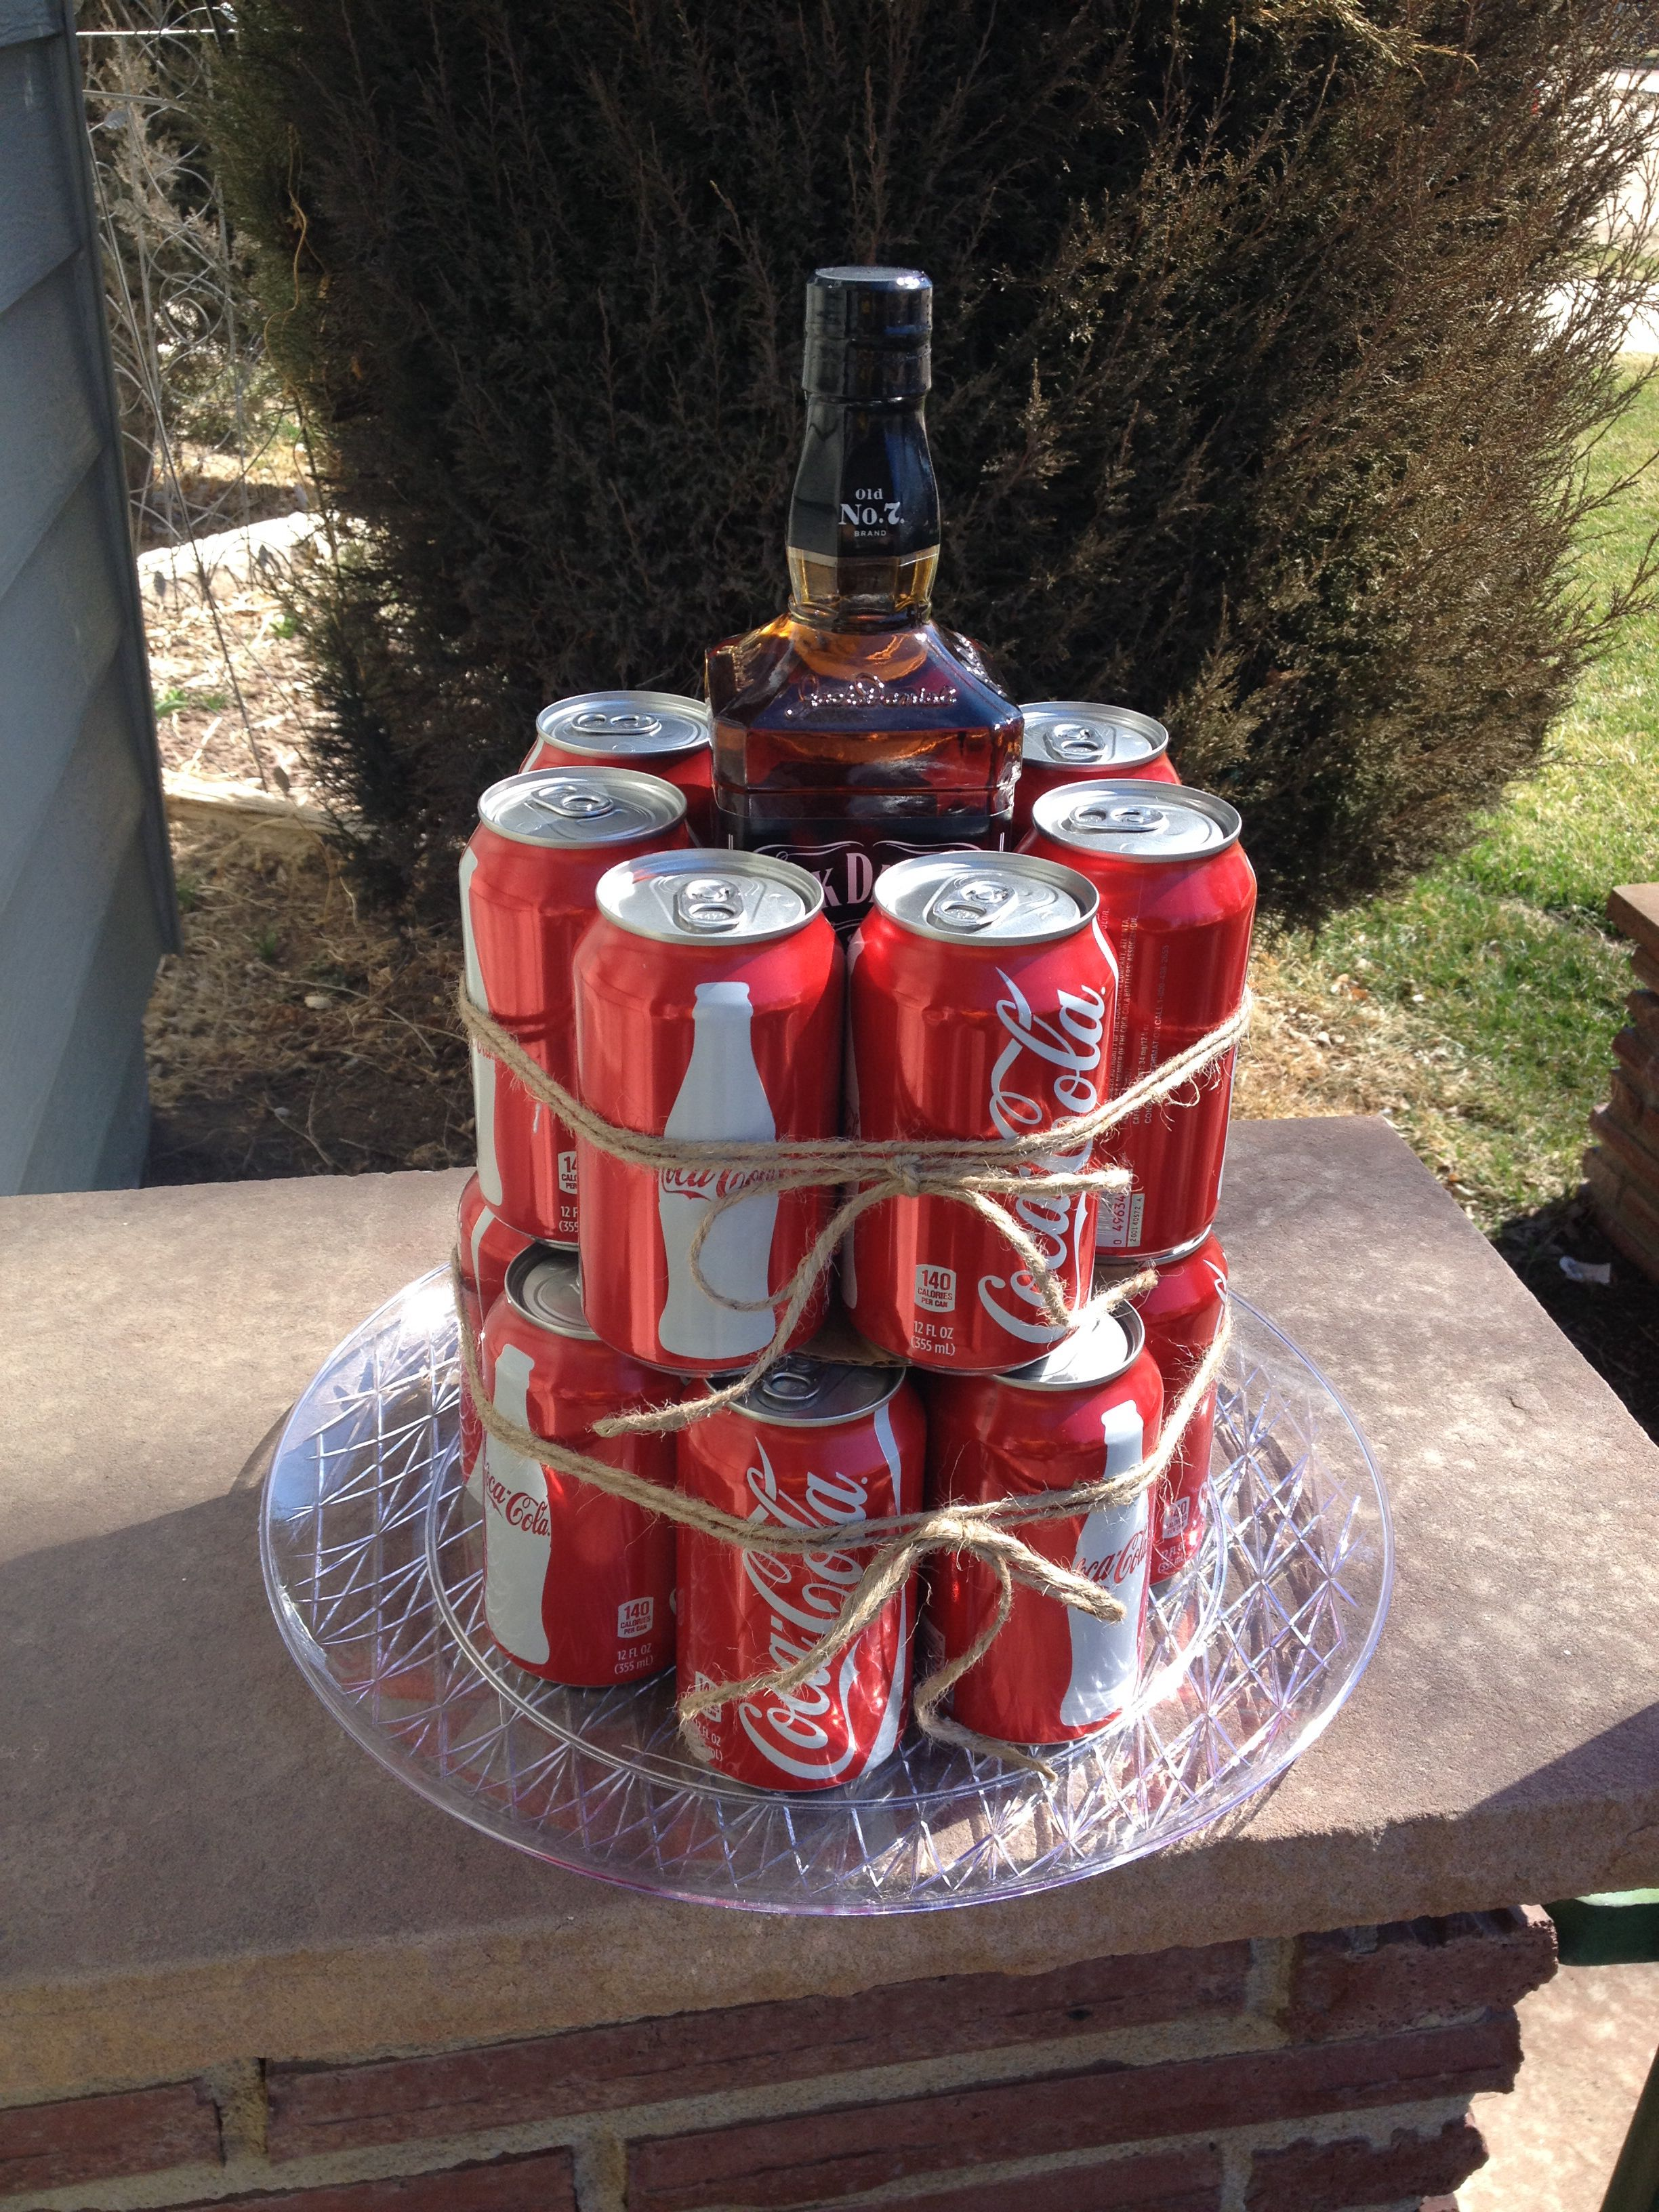 Pin By Jenny Koester On The Best Gifts Come From The Heart Not The Store Coke Cake Jack And Coke Alcohol Cake